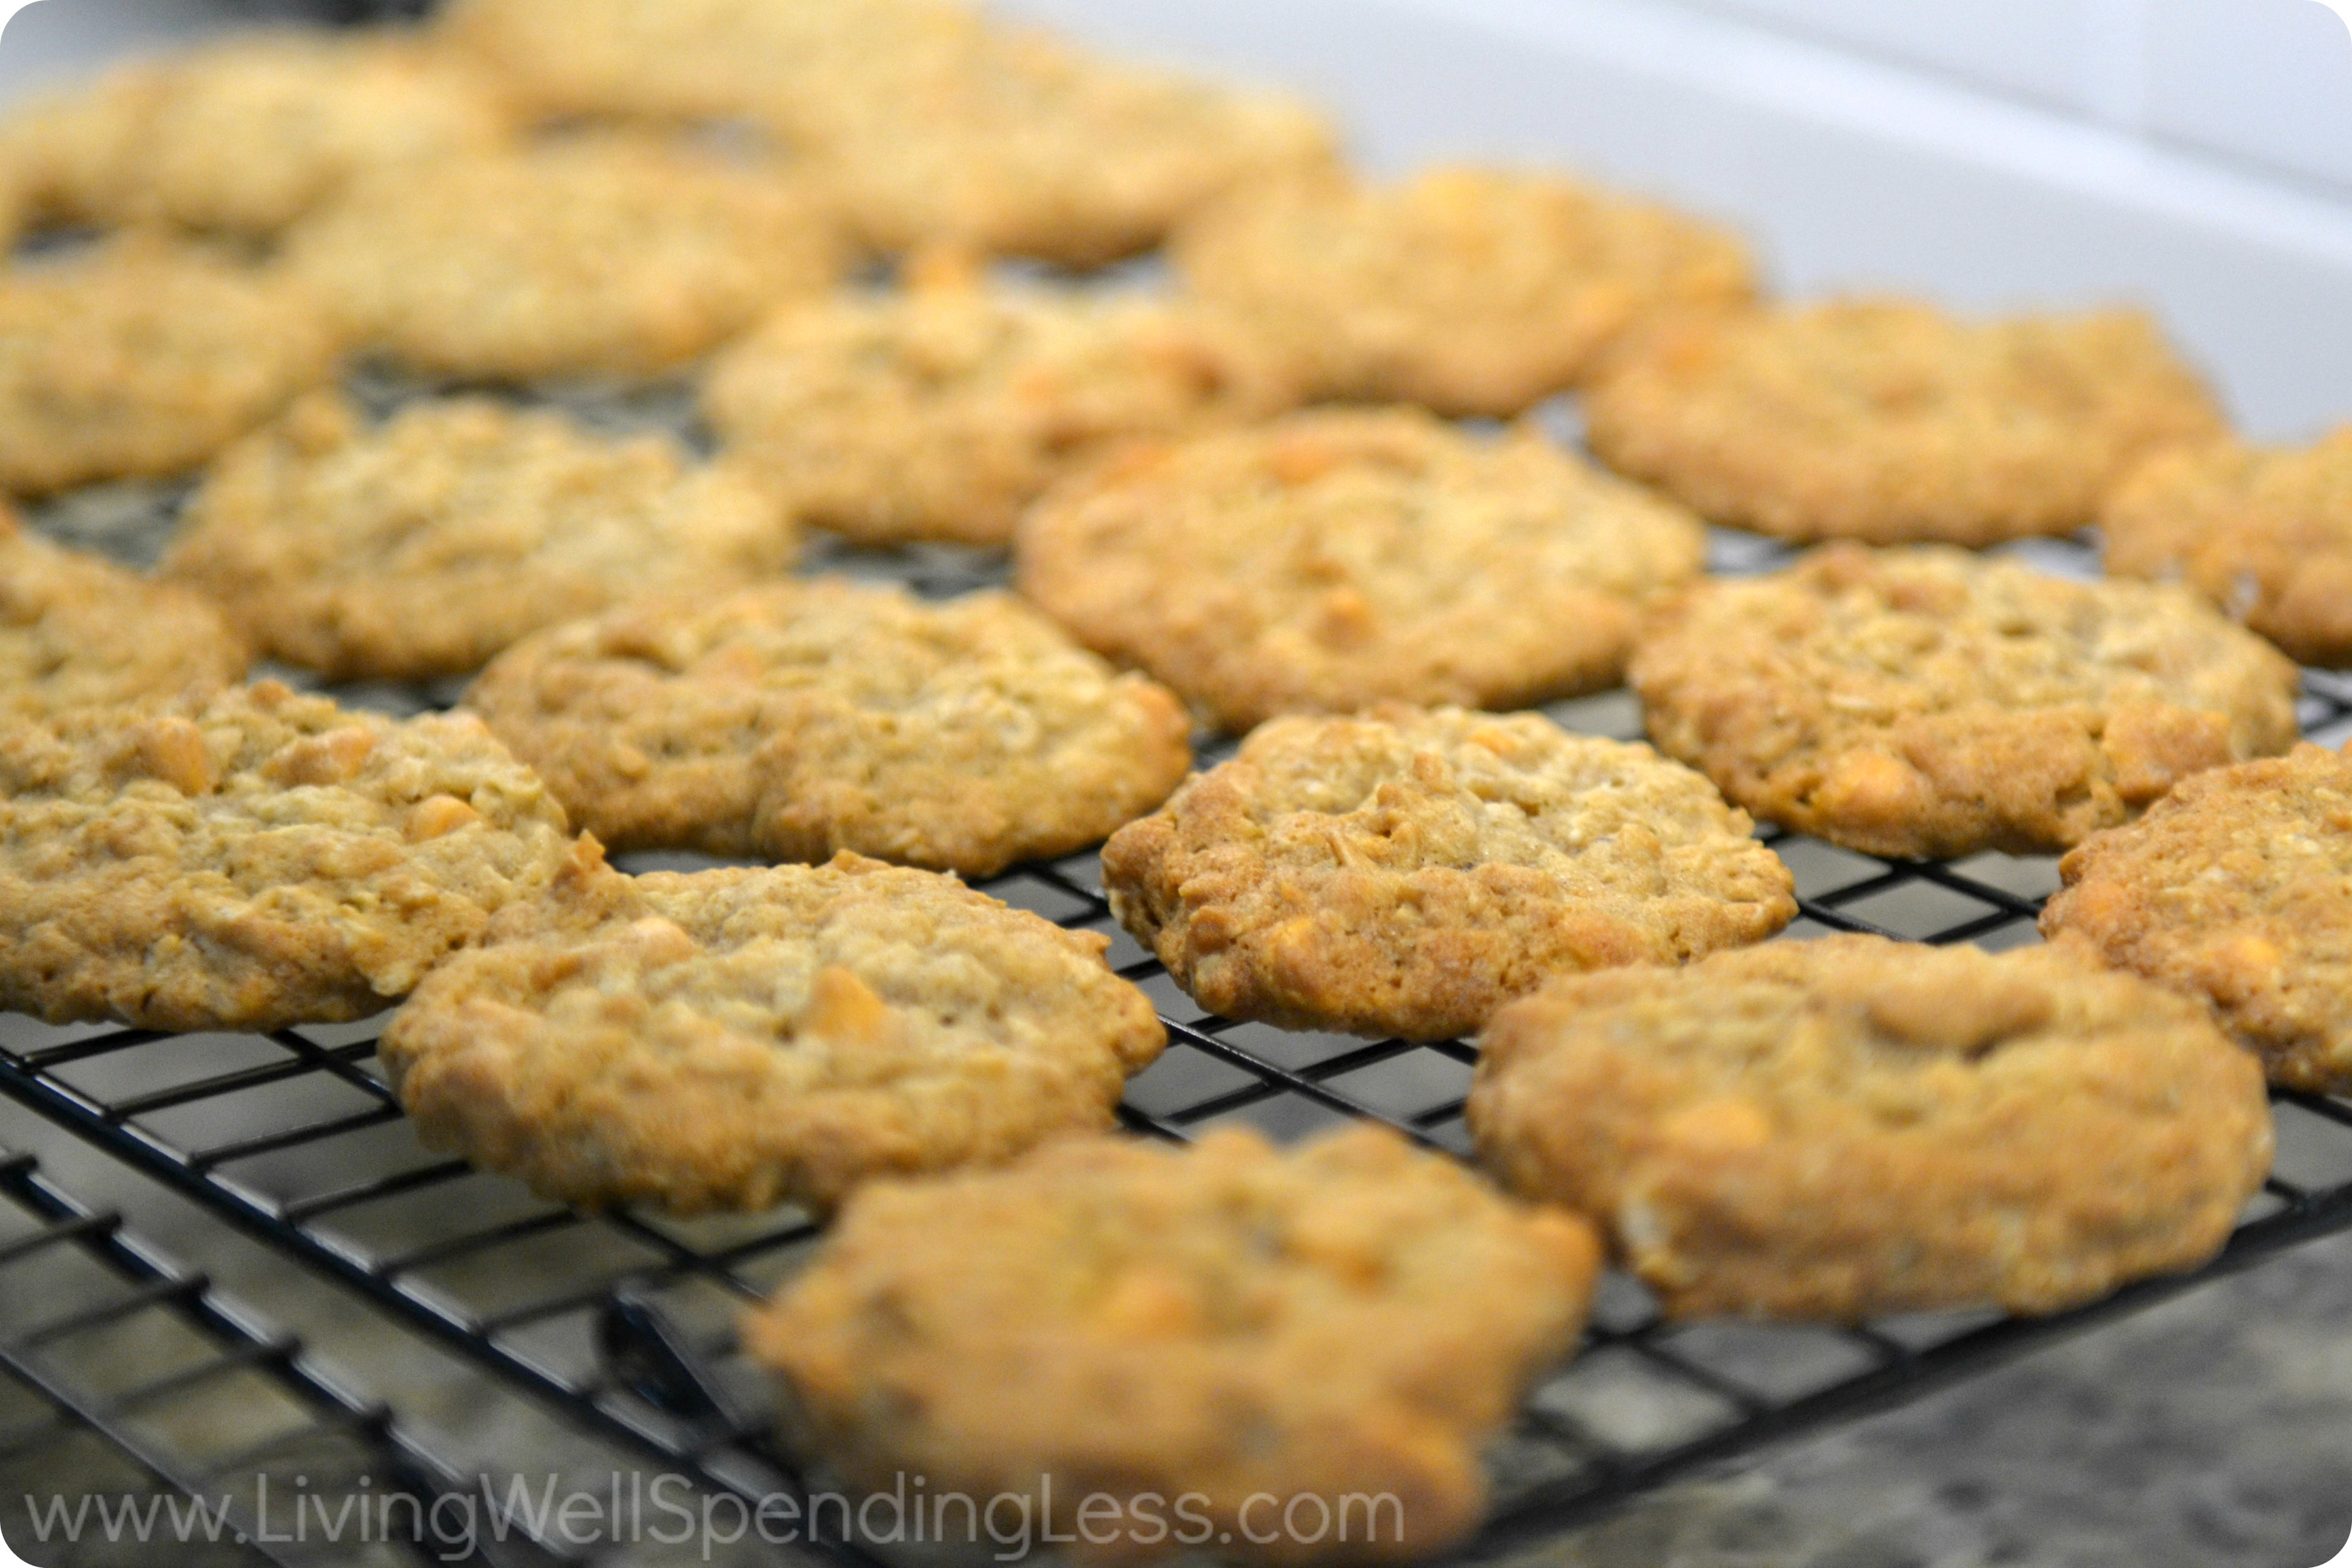 Once baked, allow the cookies to cool on a wire rack.